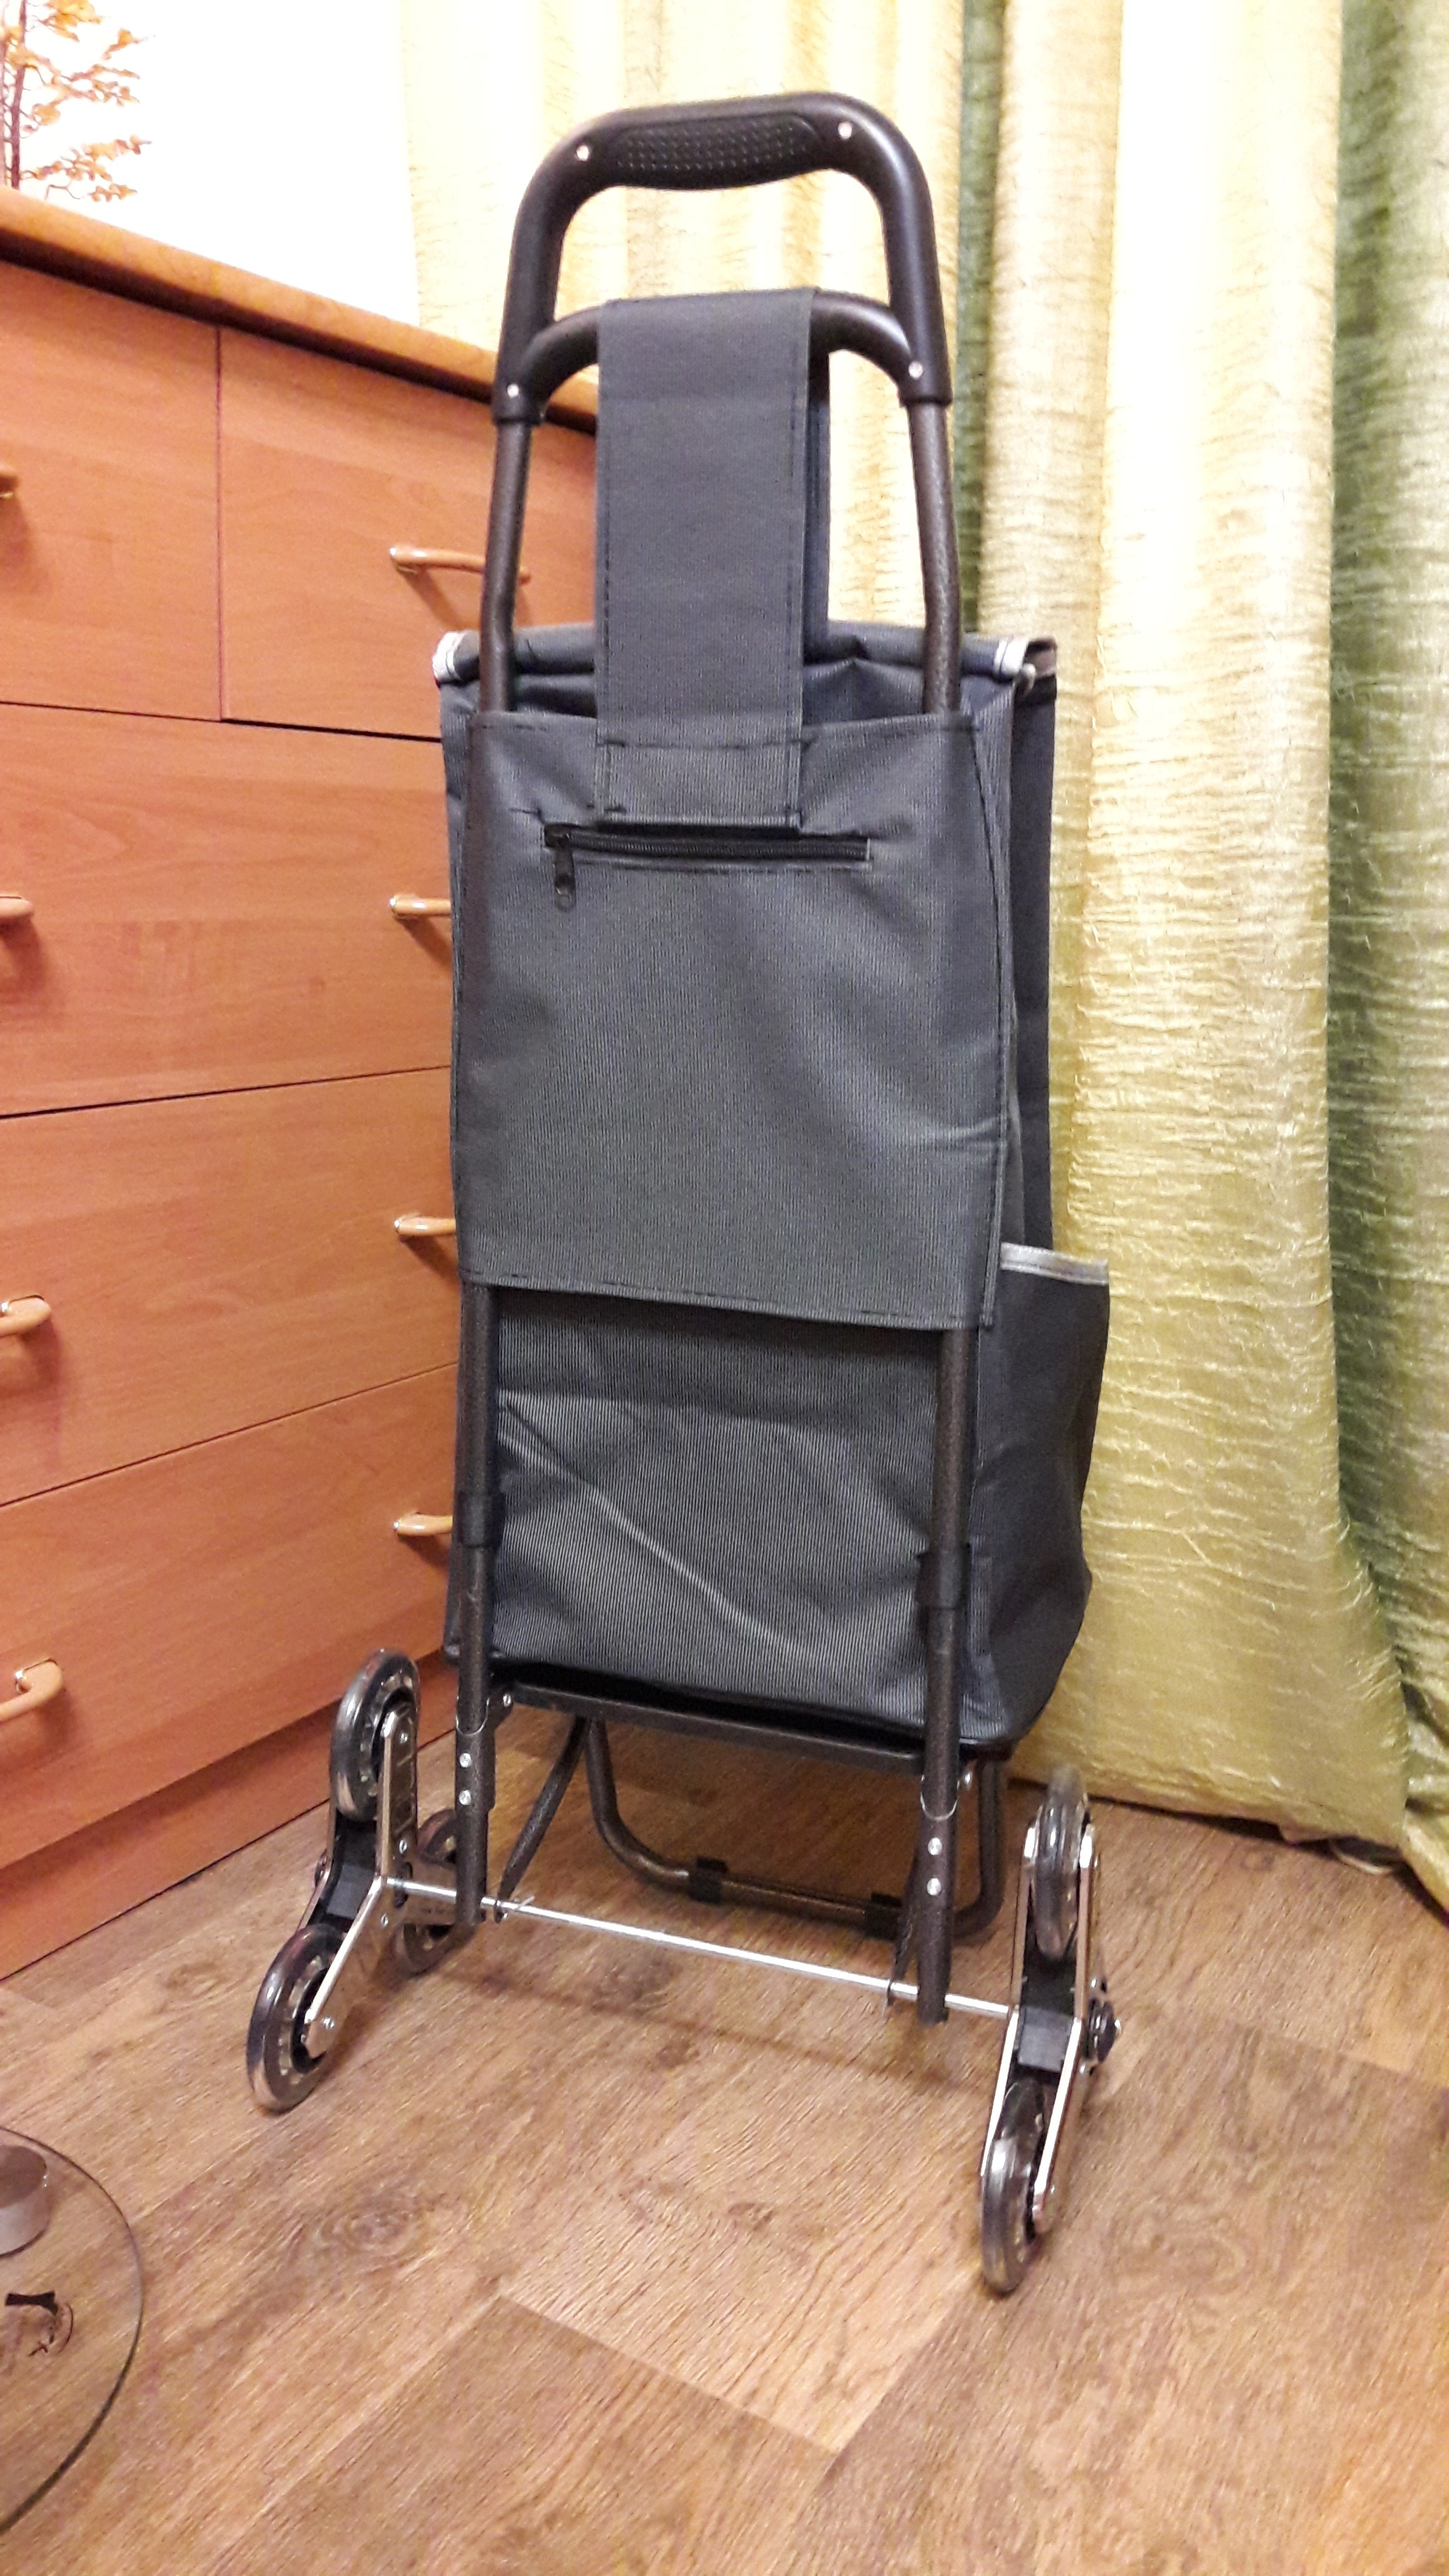 Three-wheels Stair Woman Shopping Cart ladder shopping basket large-capacity shopping Trolley Portable waterproof shopping bags photo review